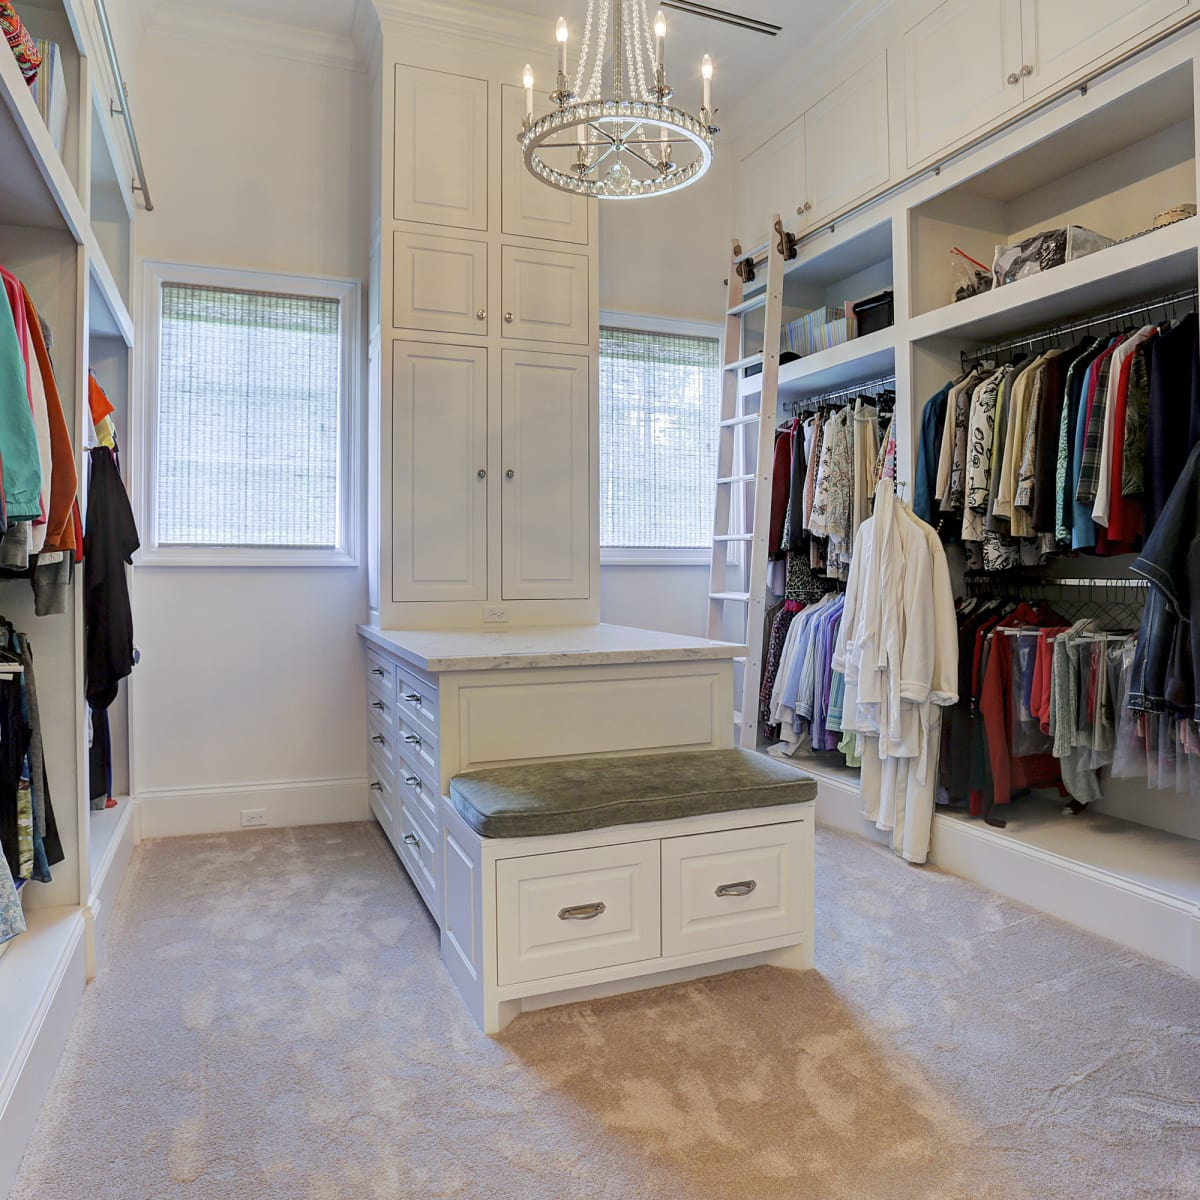 Houston, Buckingham 527, June 2015, Master closet for her